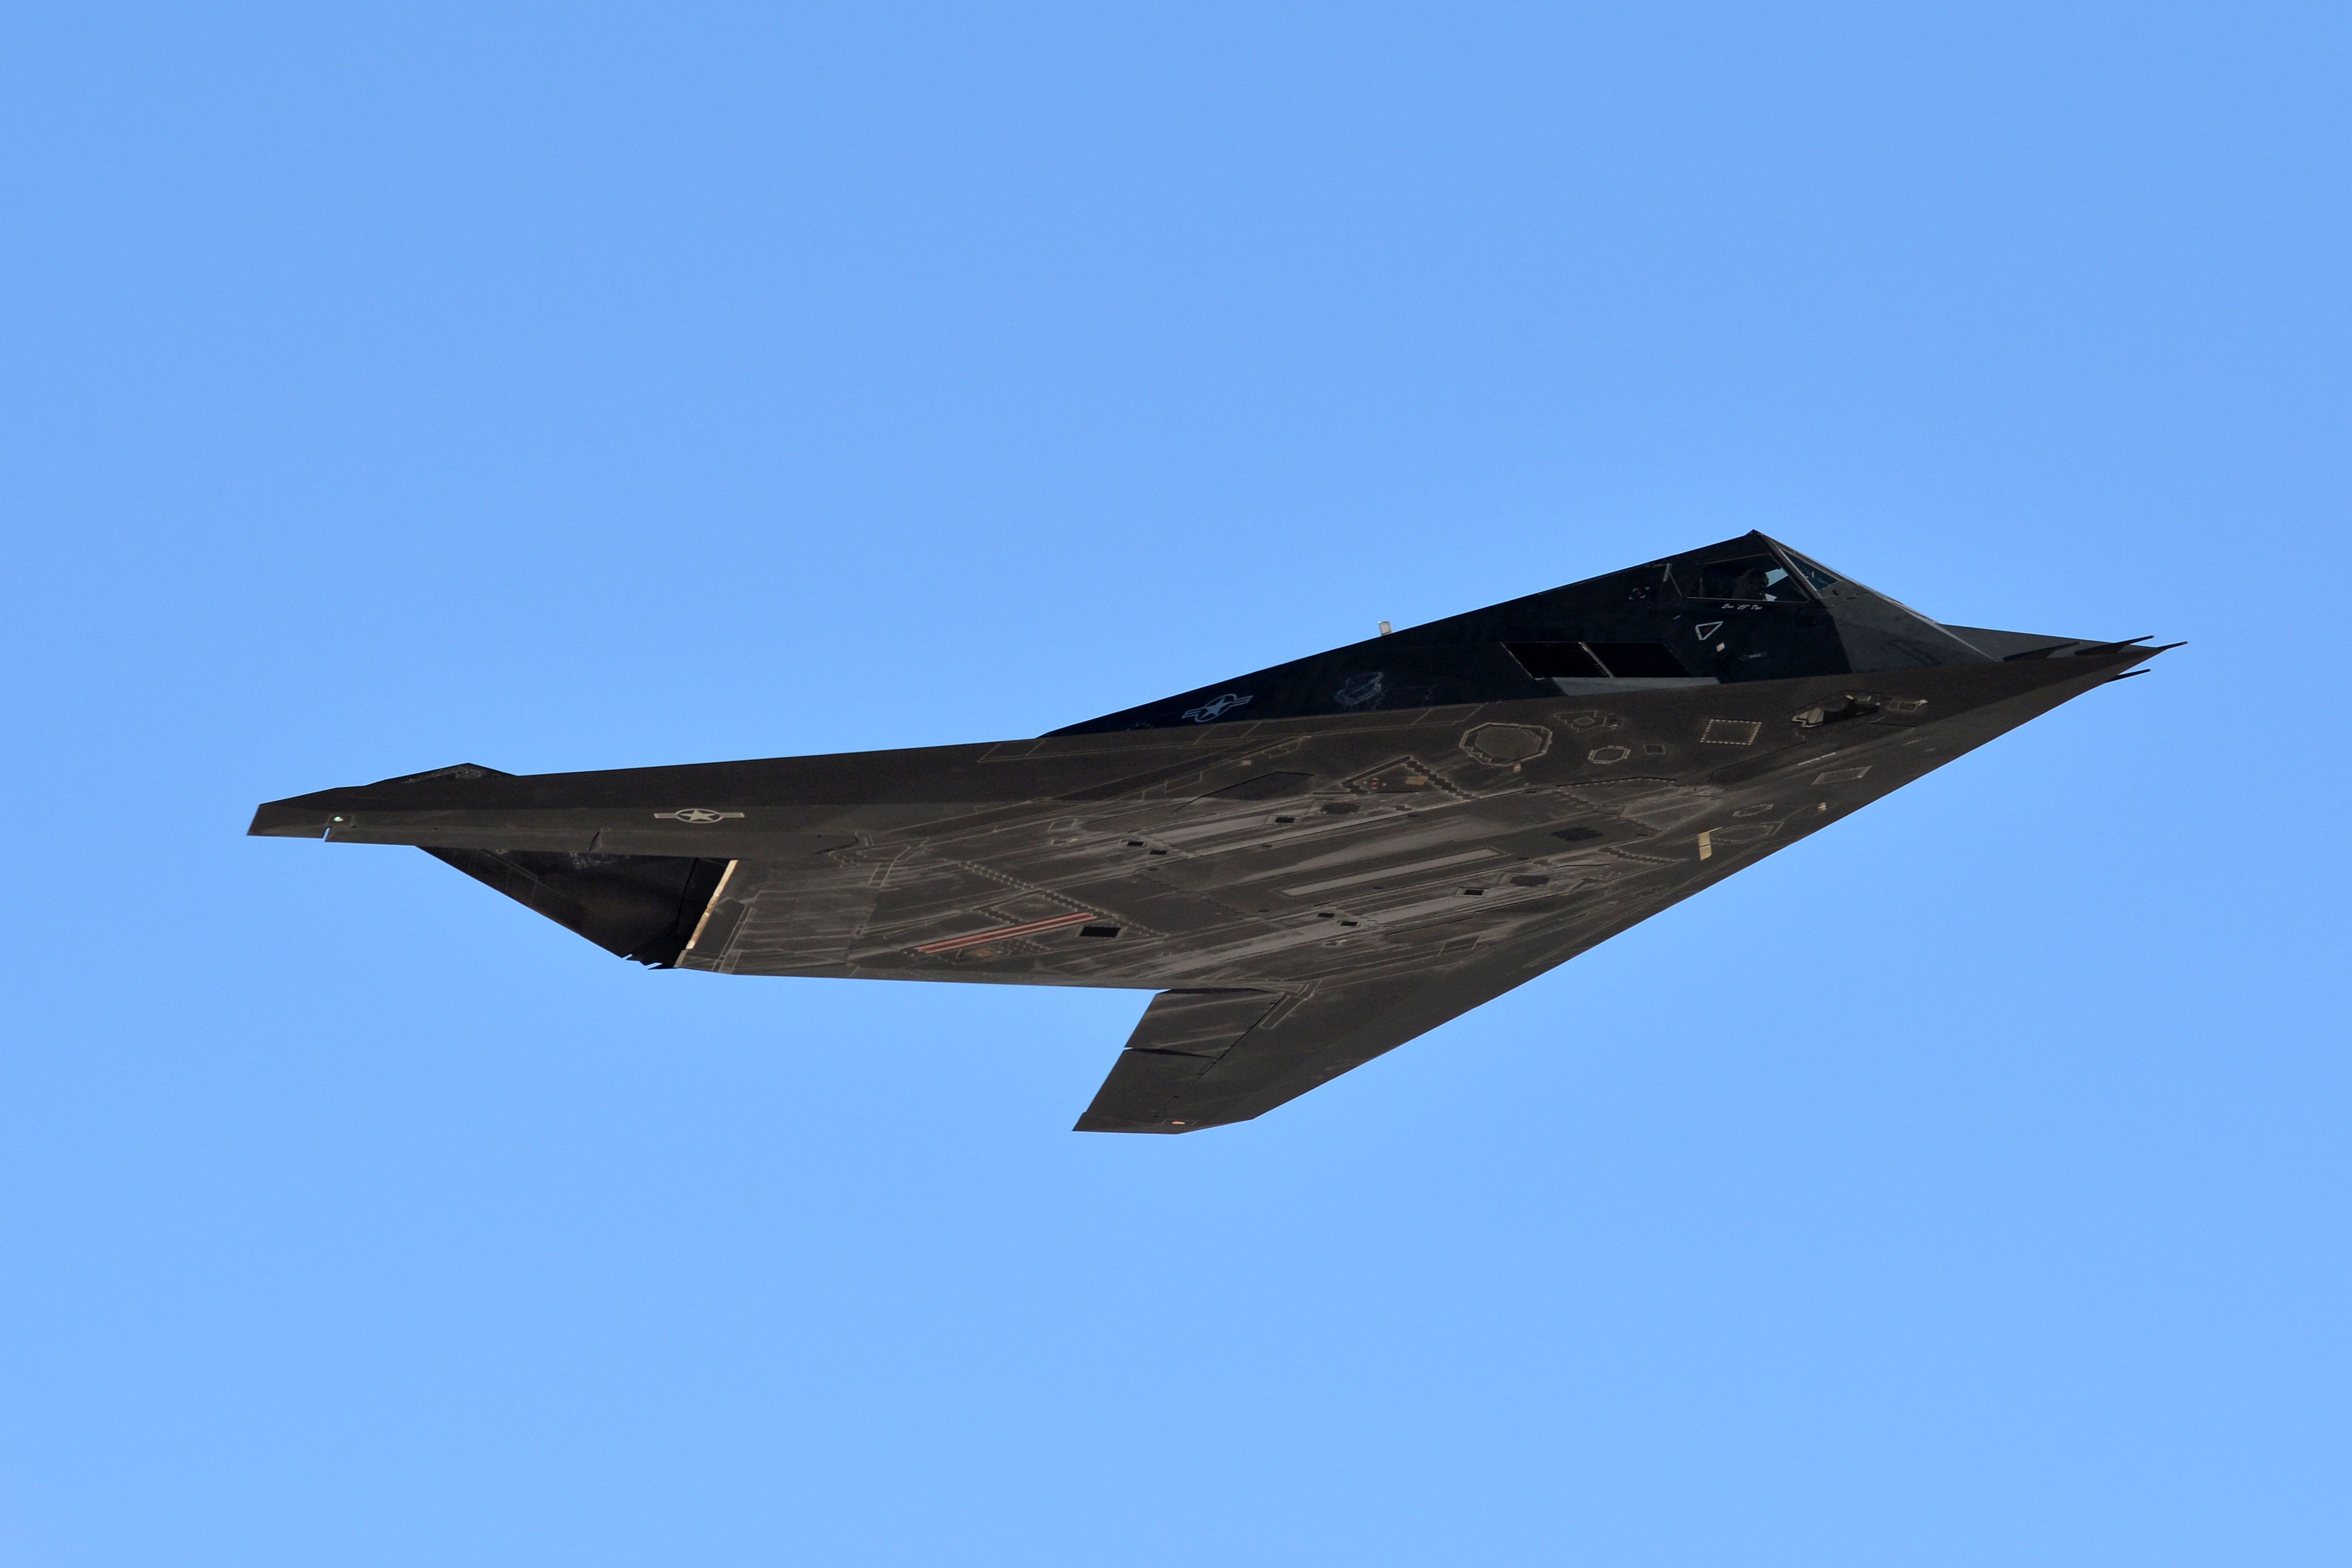 The F-117A Nighthawk Is Allegedly Retired. So Why Is It Secretly Flying Over L.A.?